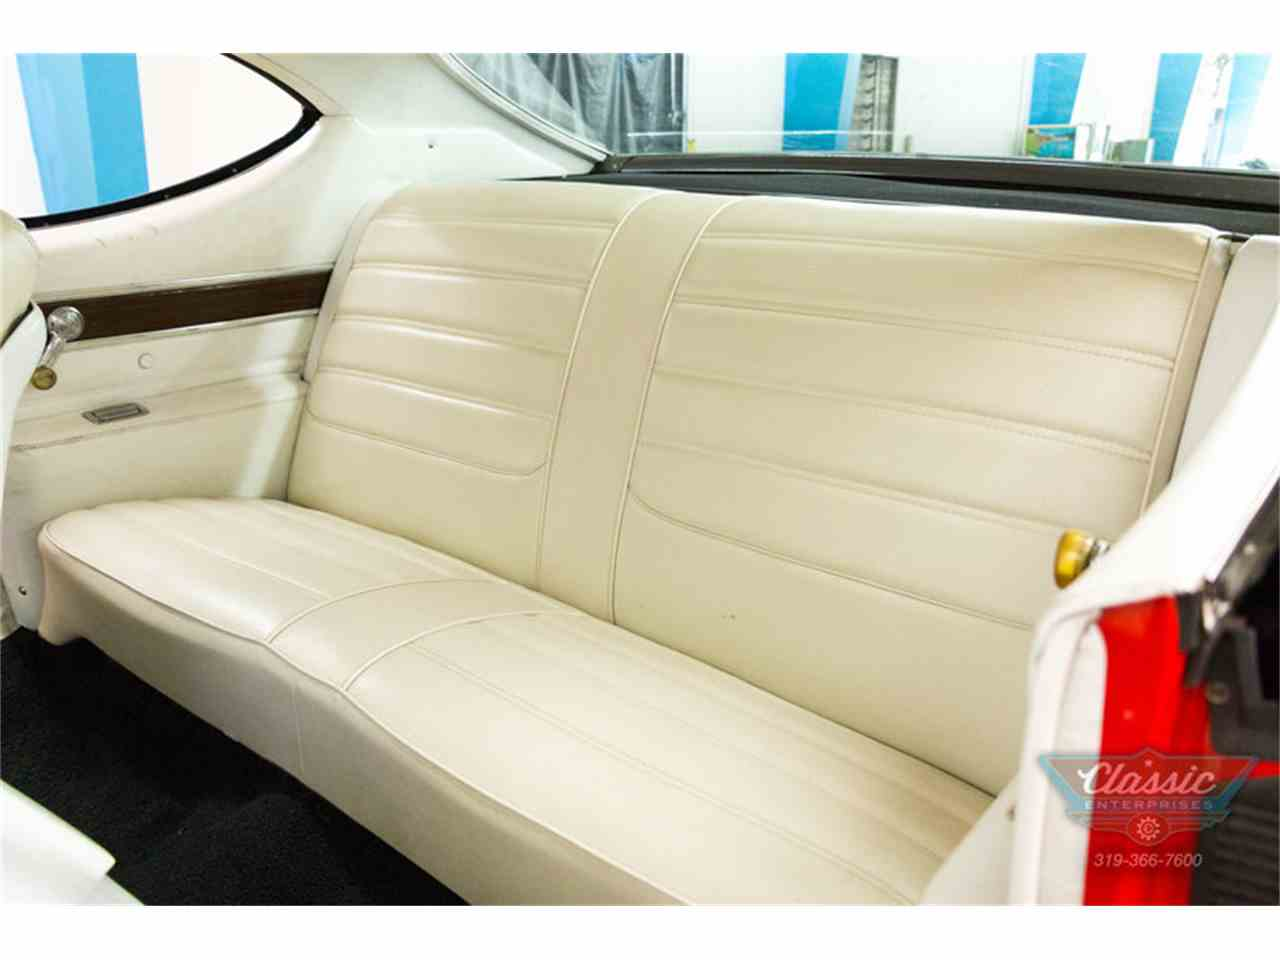 Large Picture of Classic 1972 Cutlass - $28,950.00 Offered by Classic Enterprises - HIAM